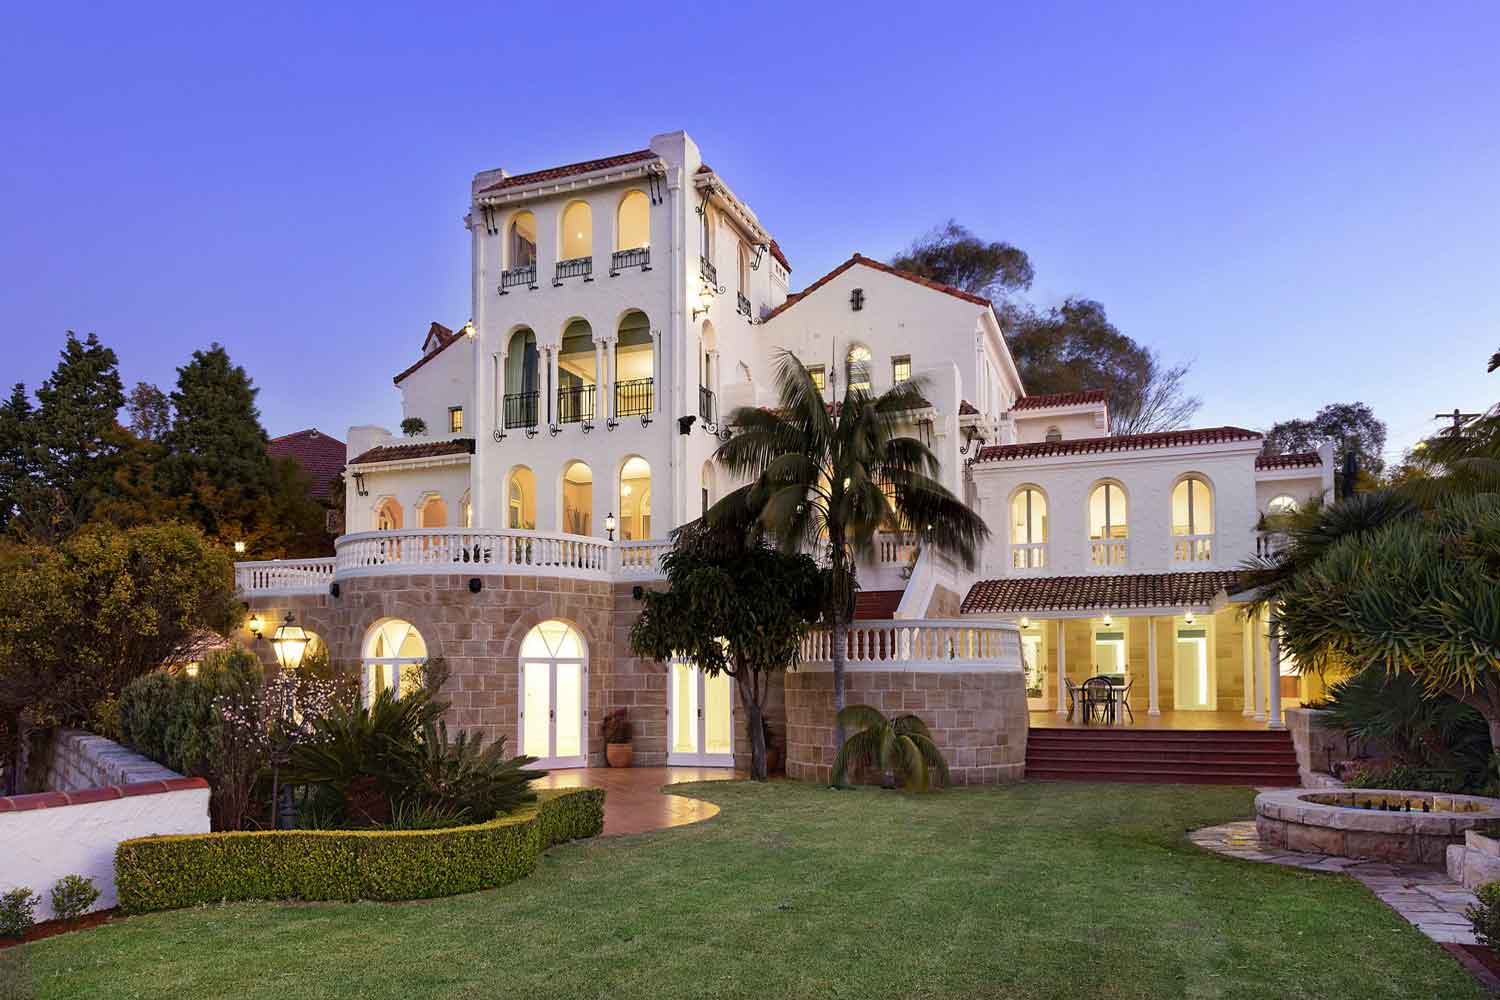 Alcooringa, a magnificent 1930s Spanish Mission-style estate, has a prime location in Bellevue Hill with convenient access to Sydney CBD, Sydney Opera House, and the theater district. The property includes a seven-bedroom main residence, a three-bedroom cottage, a private chapel, and landscaped gardens overlooking Sydney Harbour, North Head, and the Pacific Ocean.